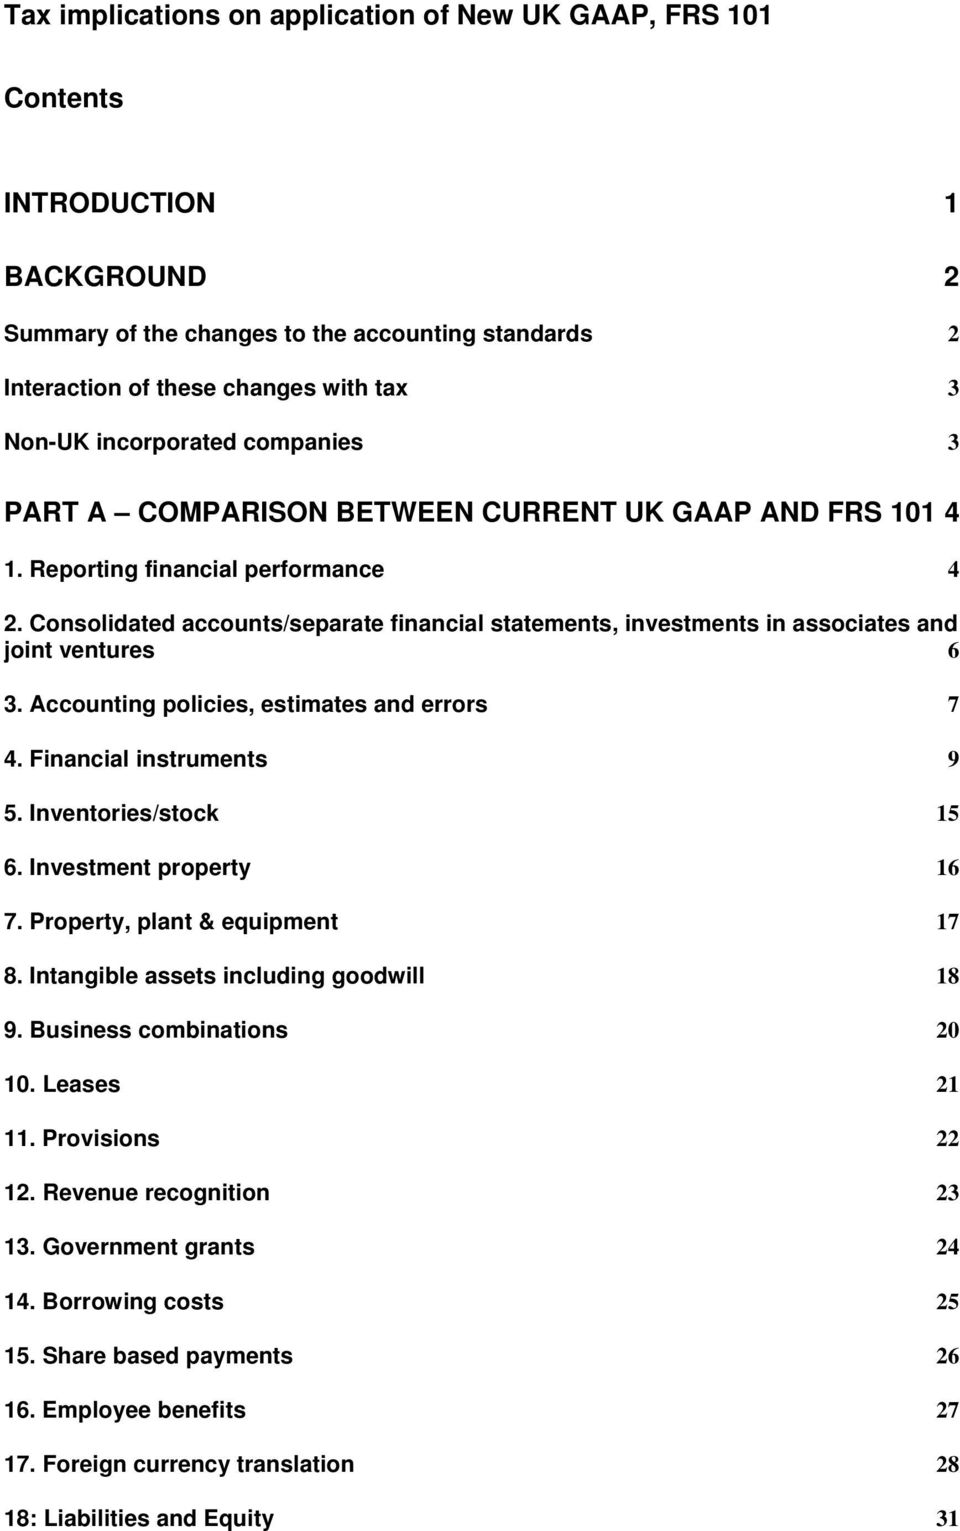 Accounting policies, estimates and errors 7 4. Financial instruments 9 5. Inventories/stock 15 6. Investment property 16 7. Property, plant & equipment 17 8. Intangible assets including goodwill 18 9.